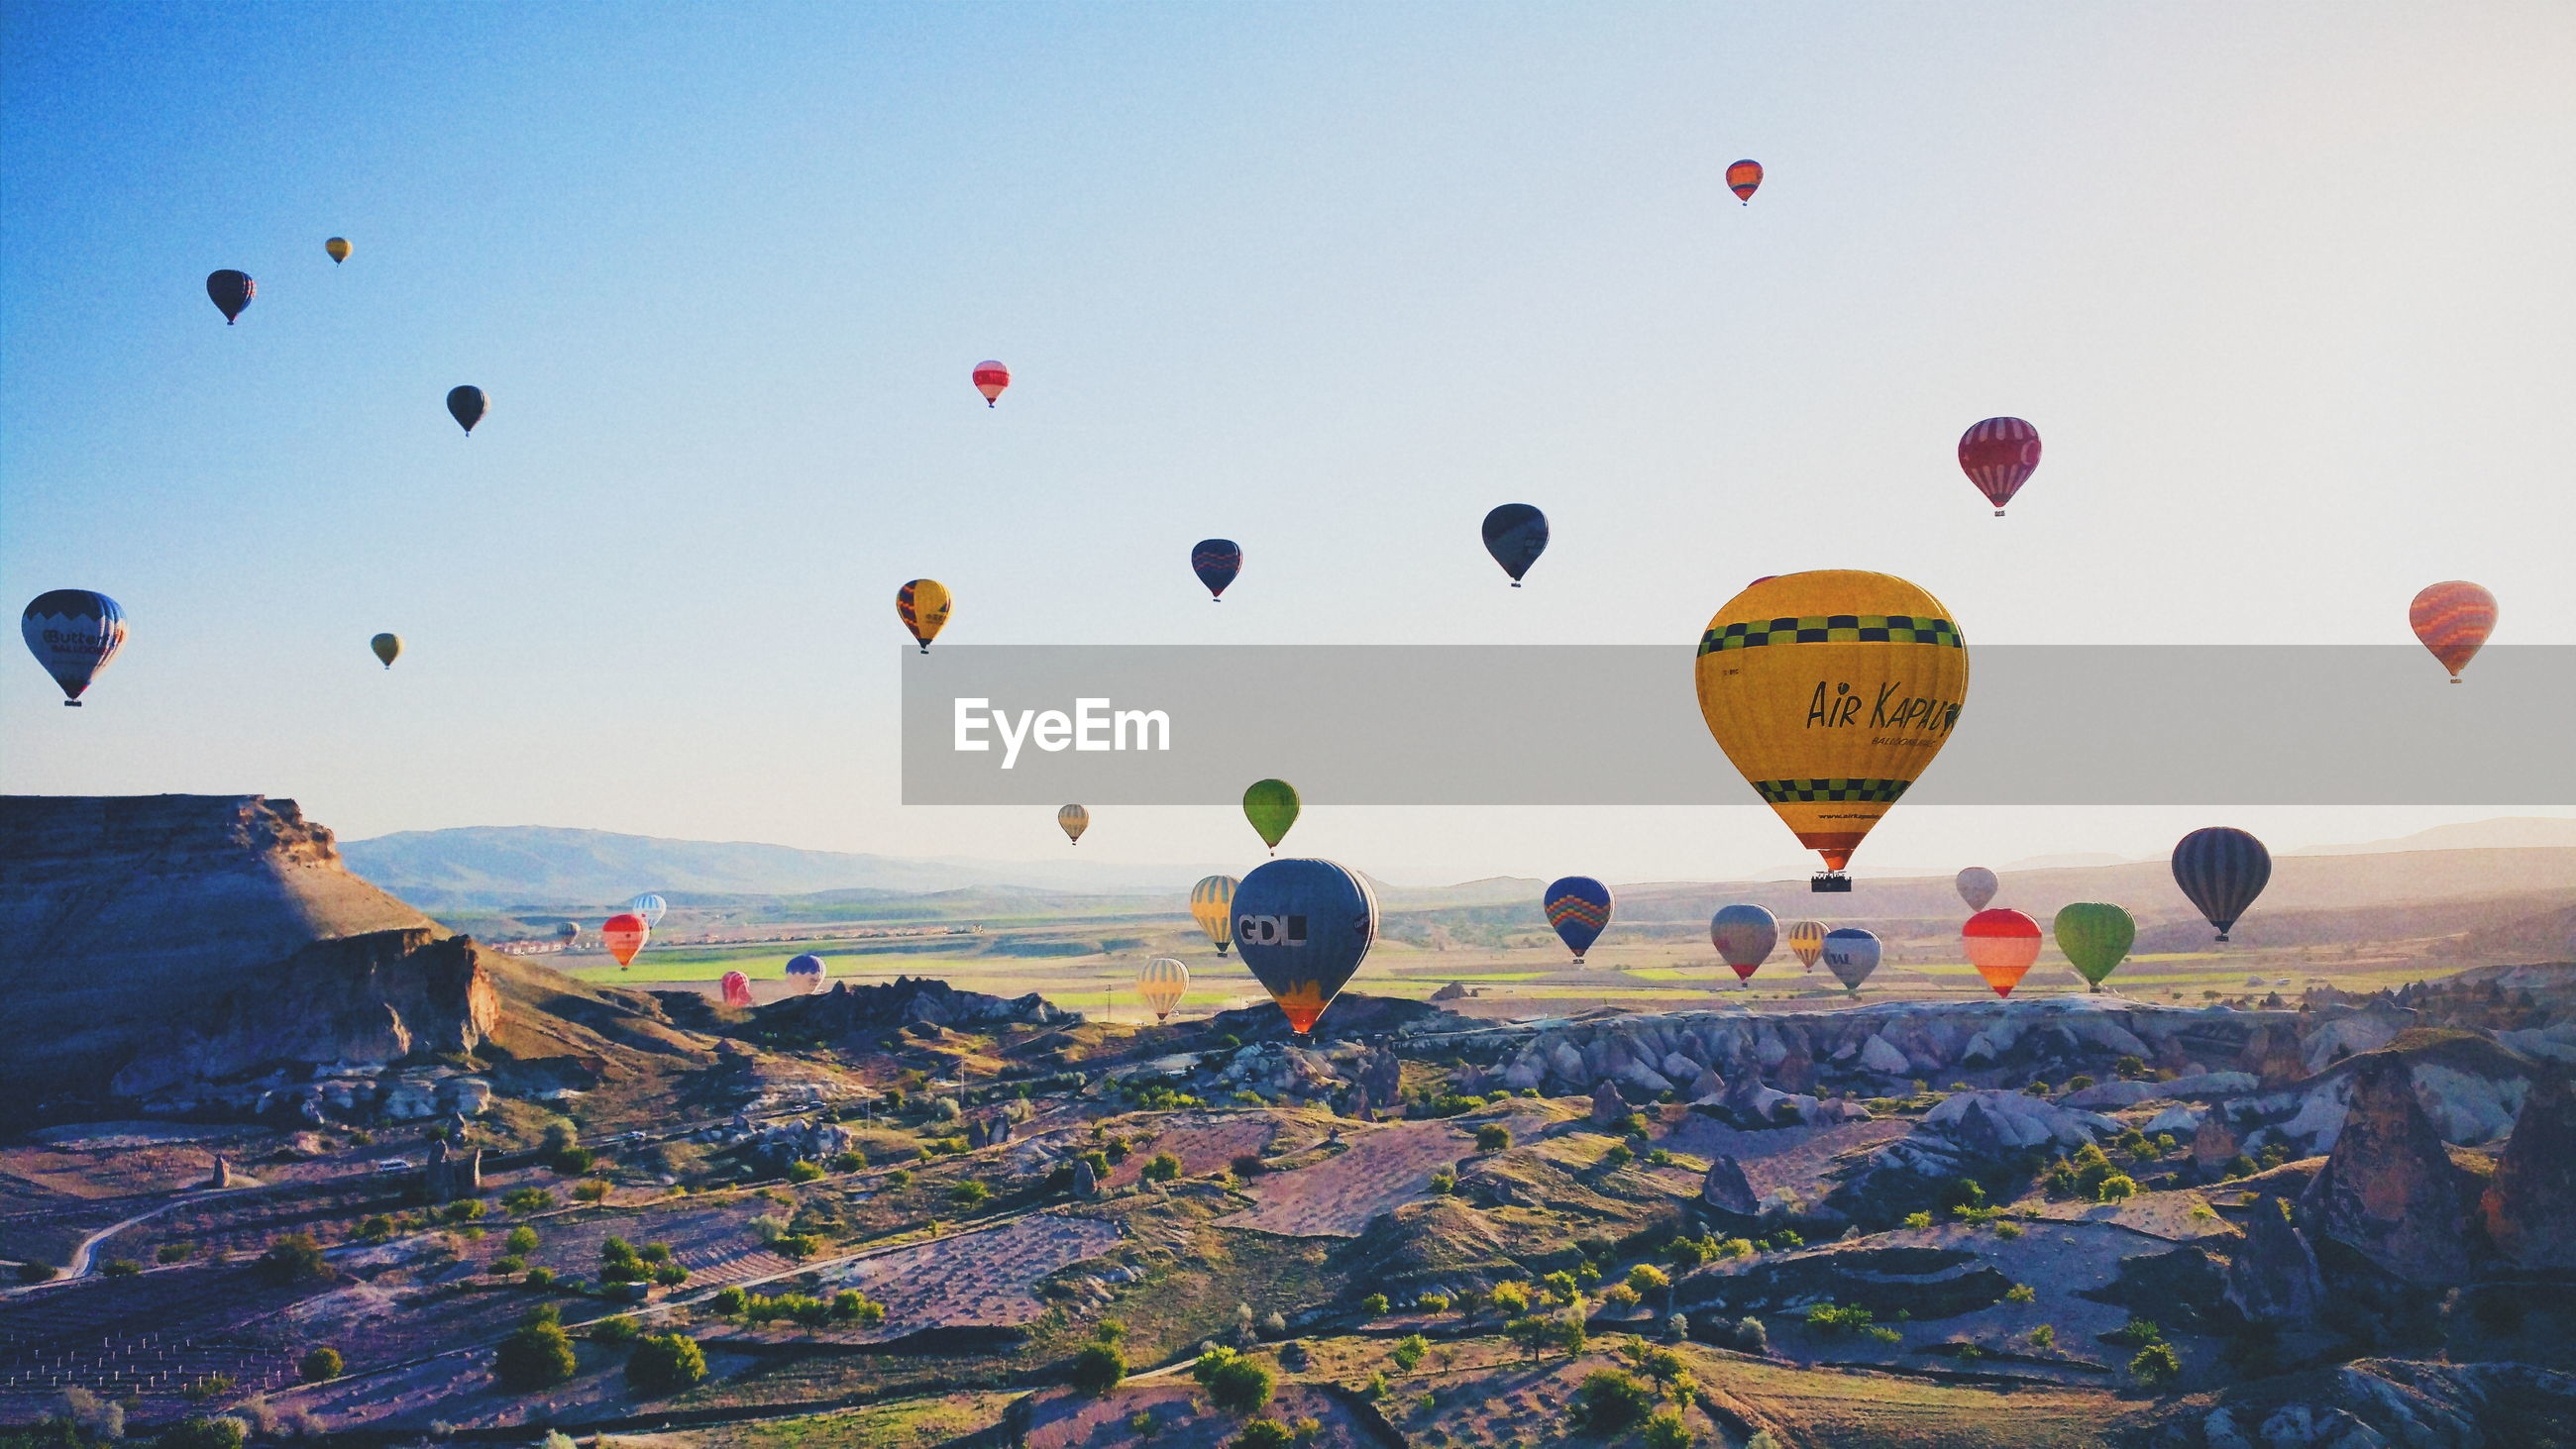 Aerial view of hot air balloons over cappadocia against sky